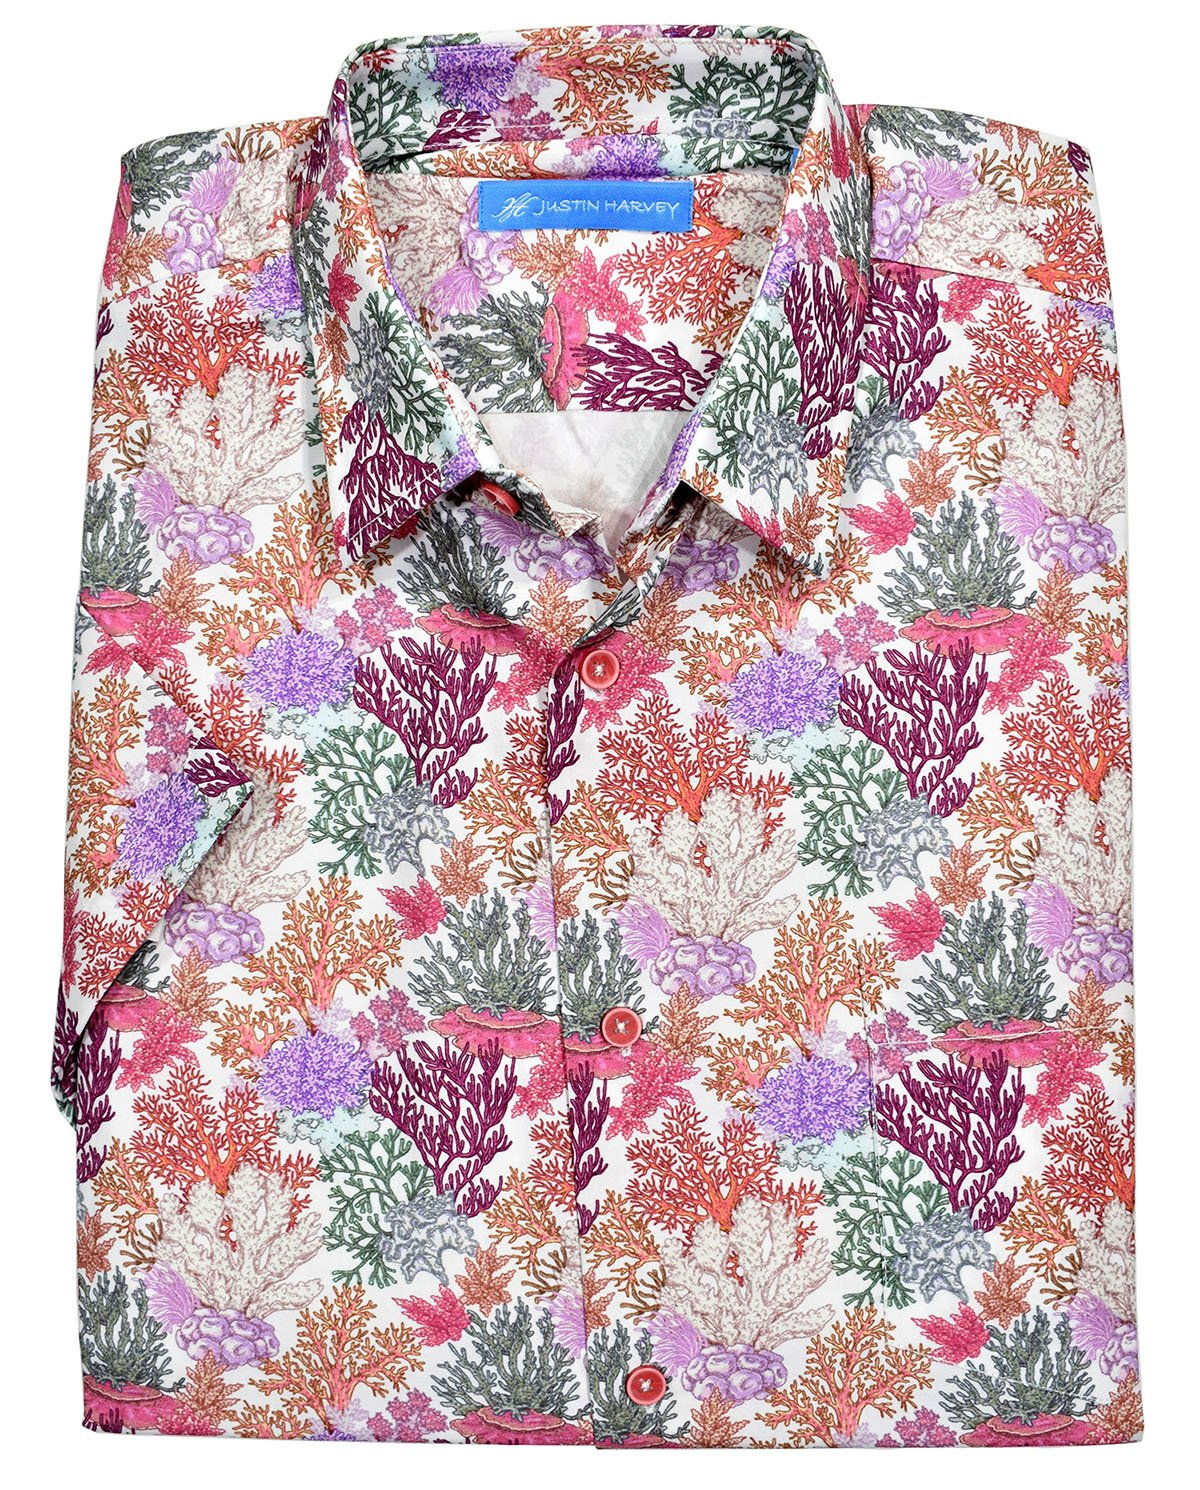 ZW130 Justin Harvey Exclusive Print Pattern Coral Garden